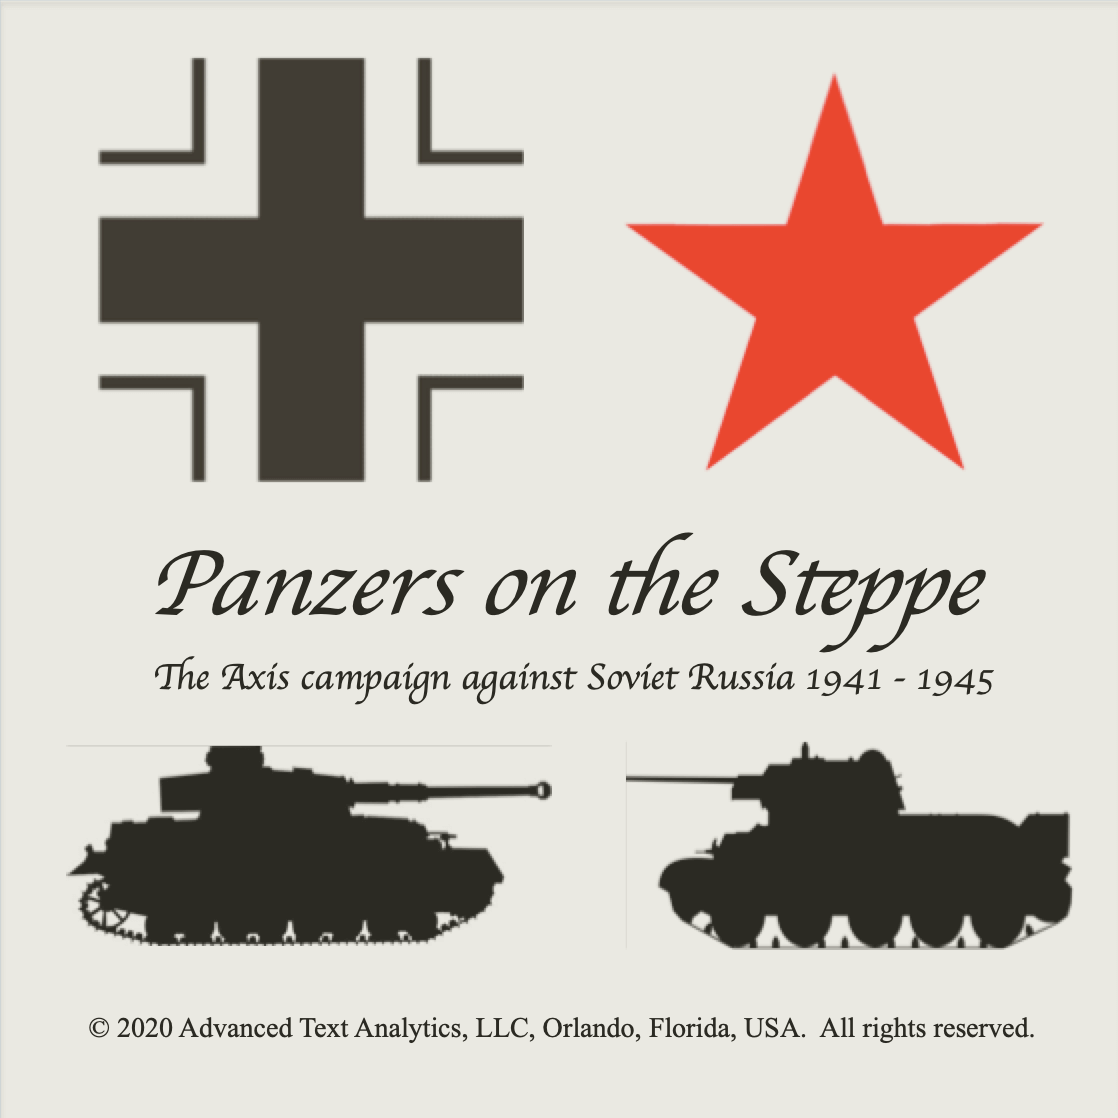 Panzers on the Steppe logo image